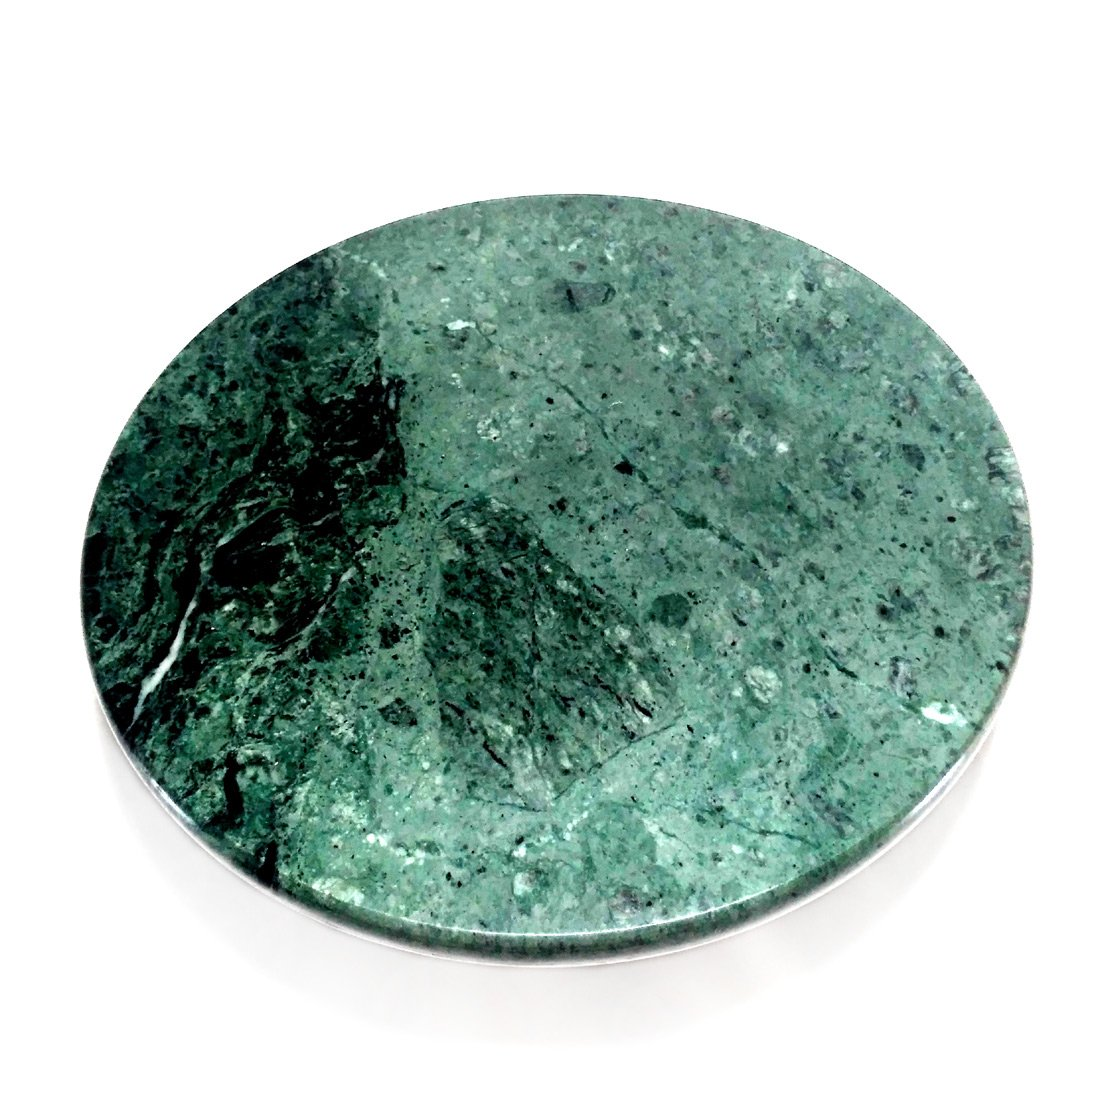 """Gr8 INDIA Green Marble Chakla - 10"""" Diameter - Ring Base Rolling Pin Board, Roti Maker - From Banks of Holy River Narmada product image"""